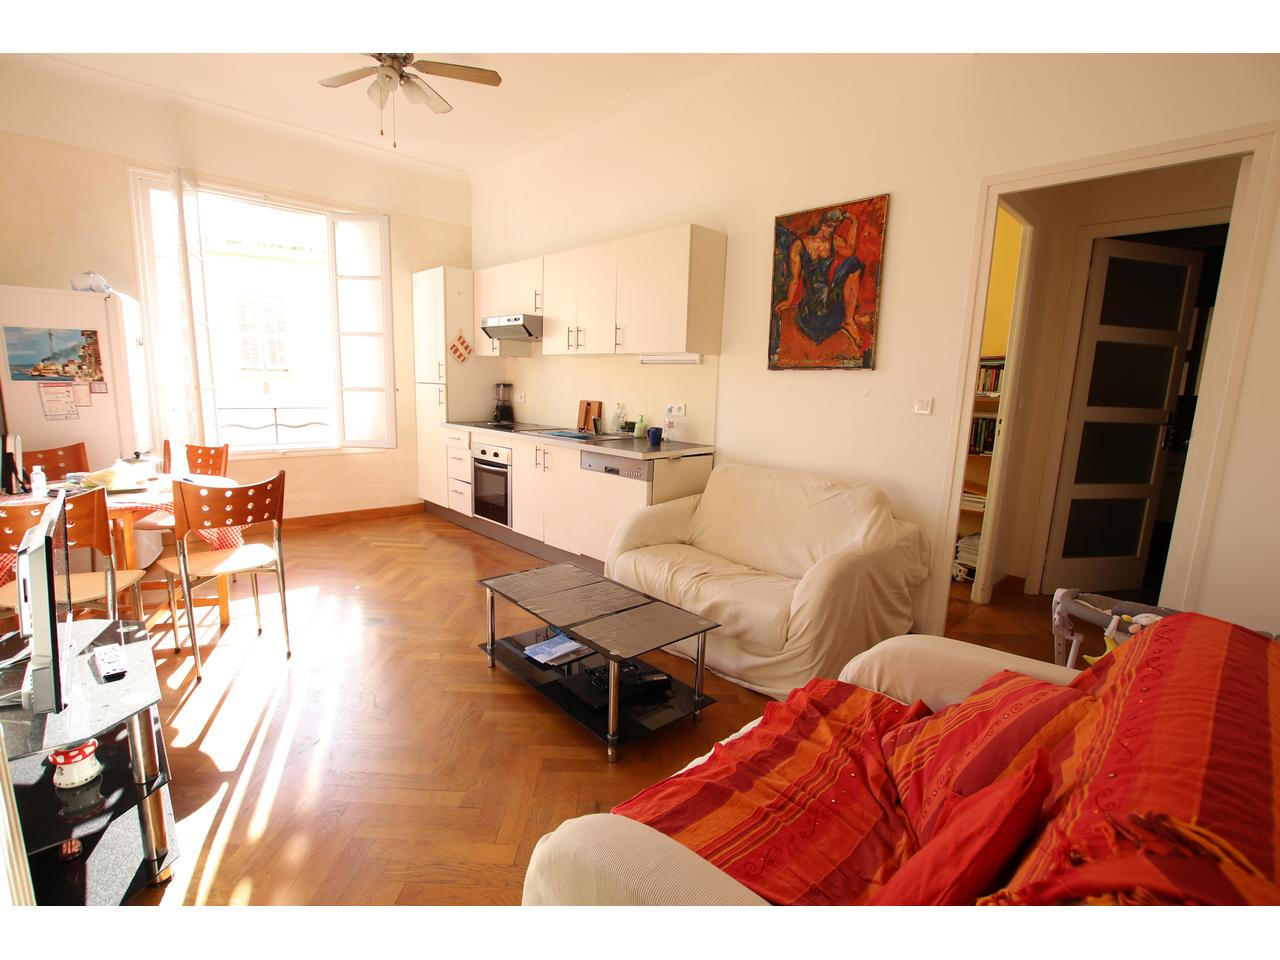 Appartement 3 Rooms 56.2m2  for sale